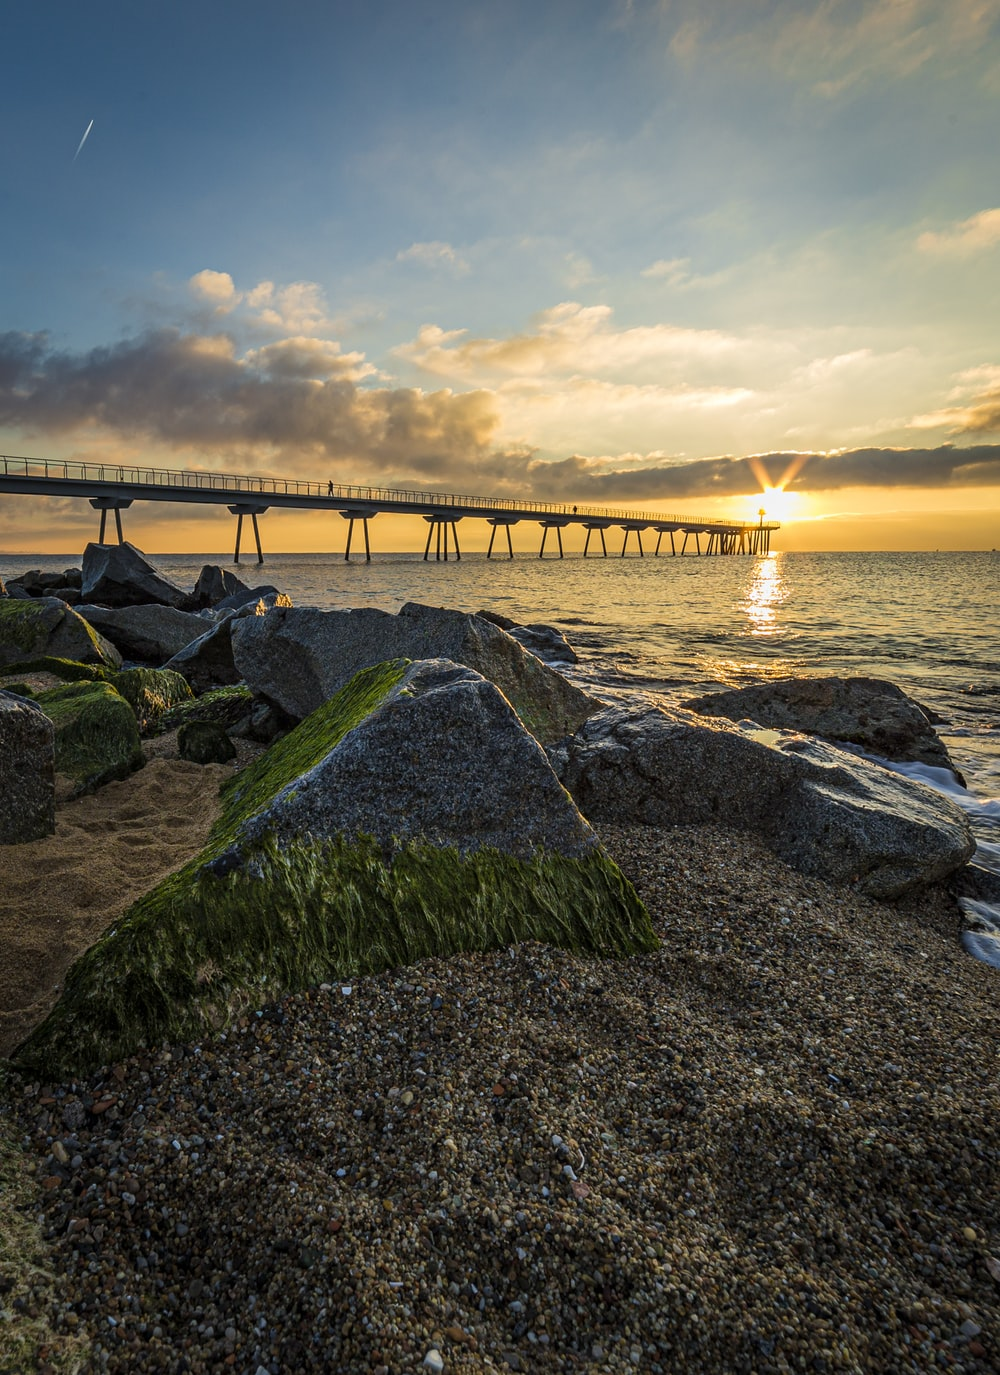 brown wooden bridge over the sea under white clouds